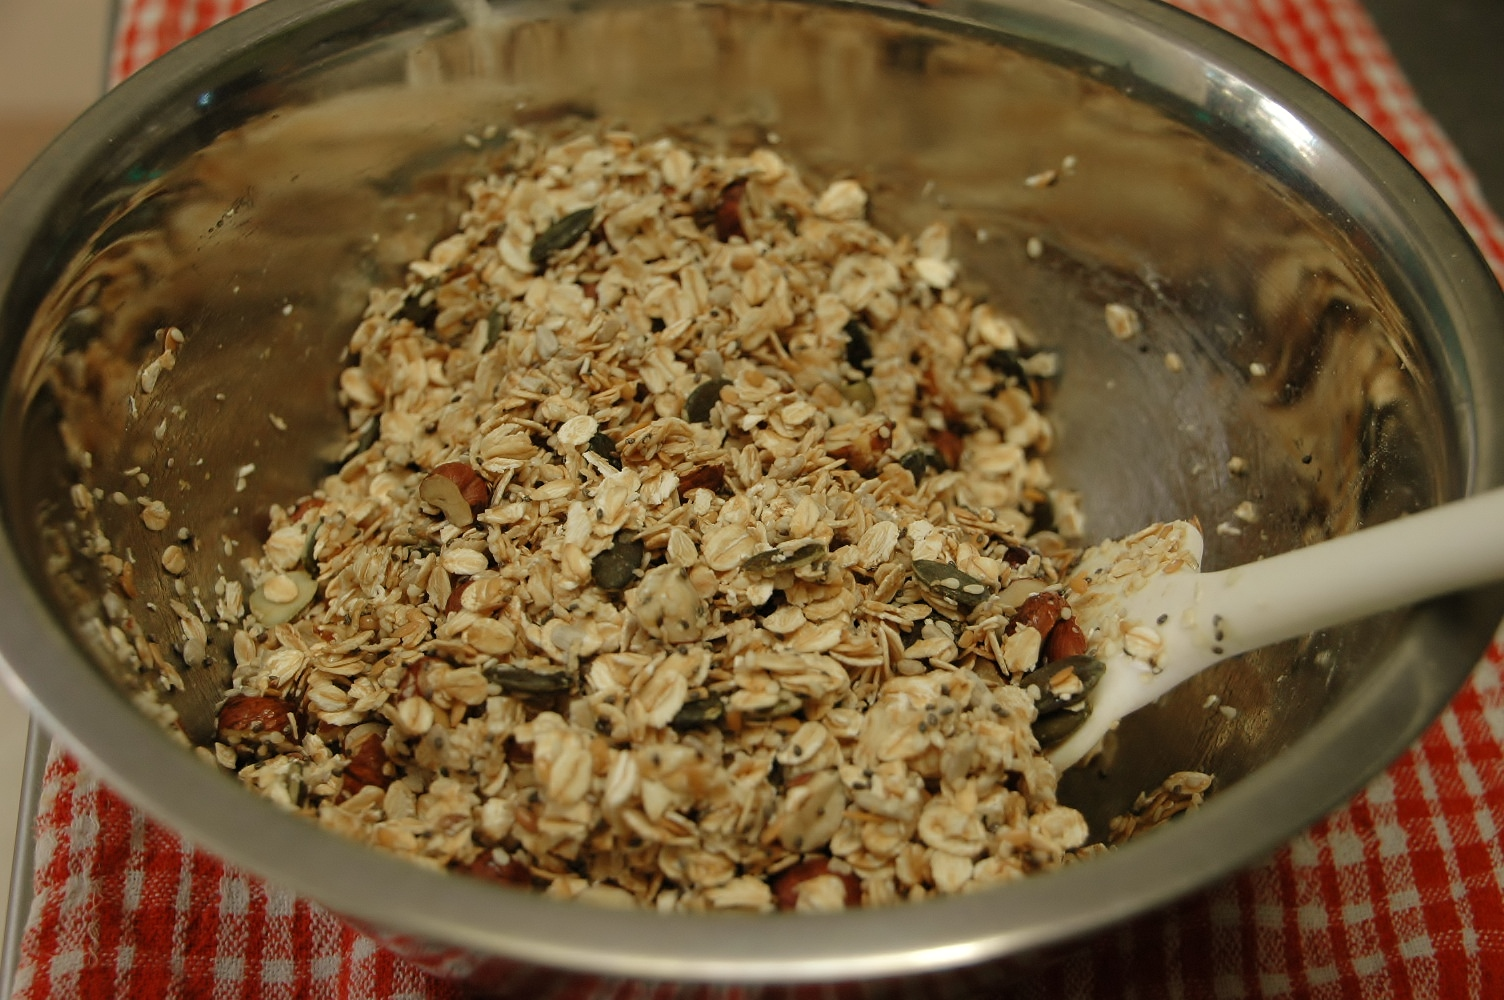 Mix syrup through muesli